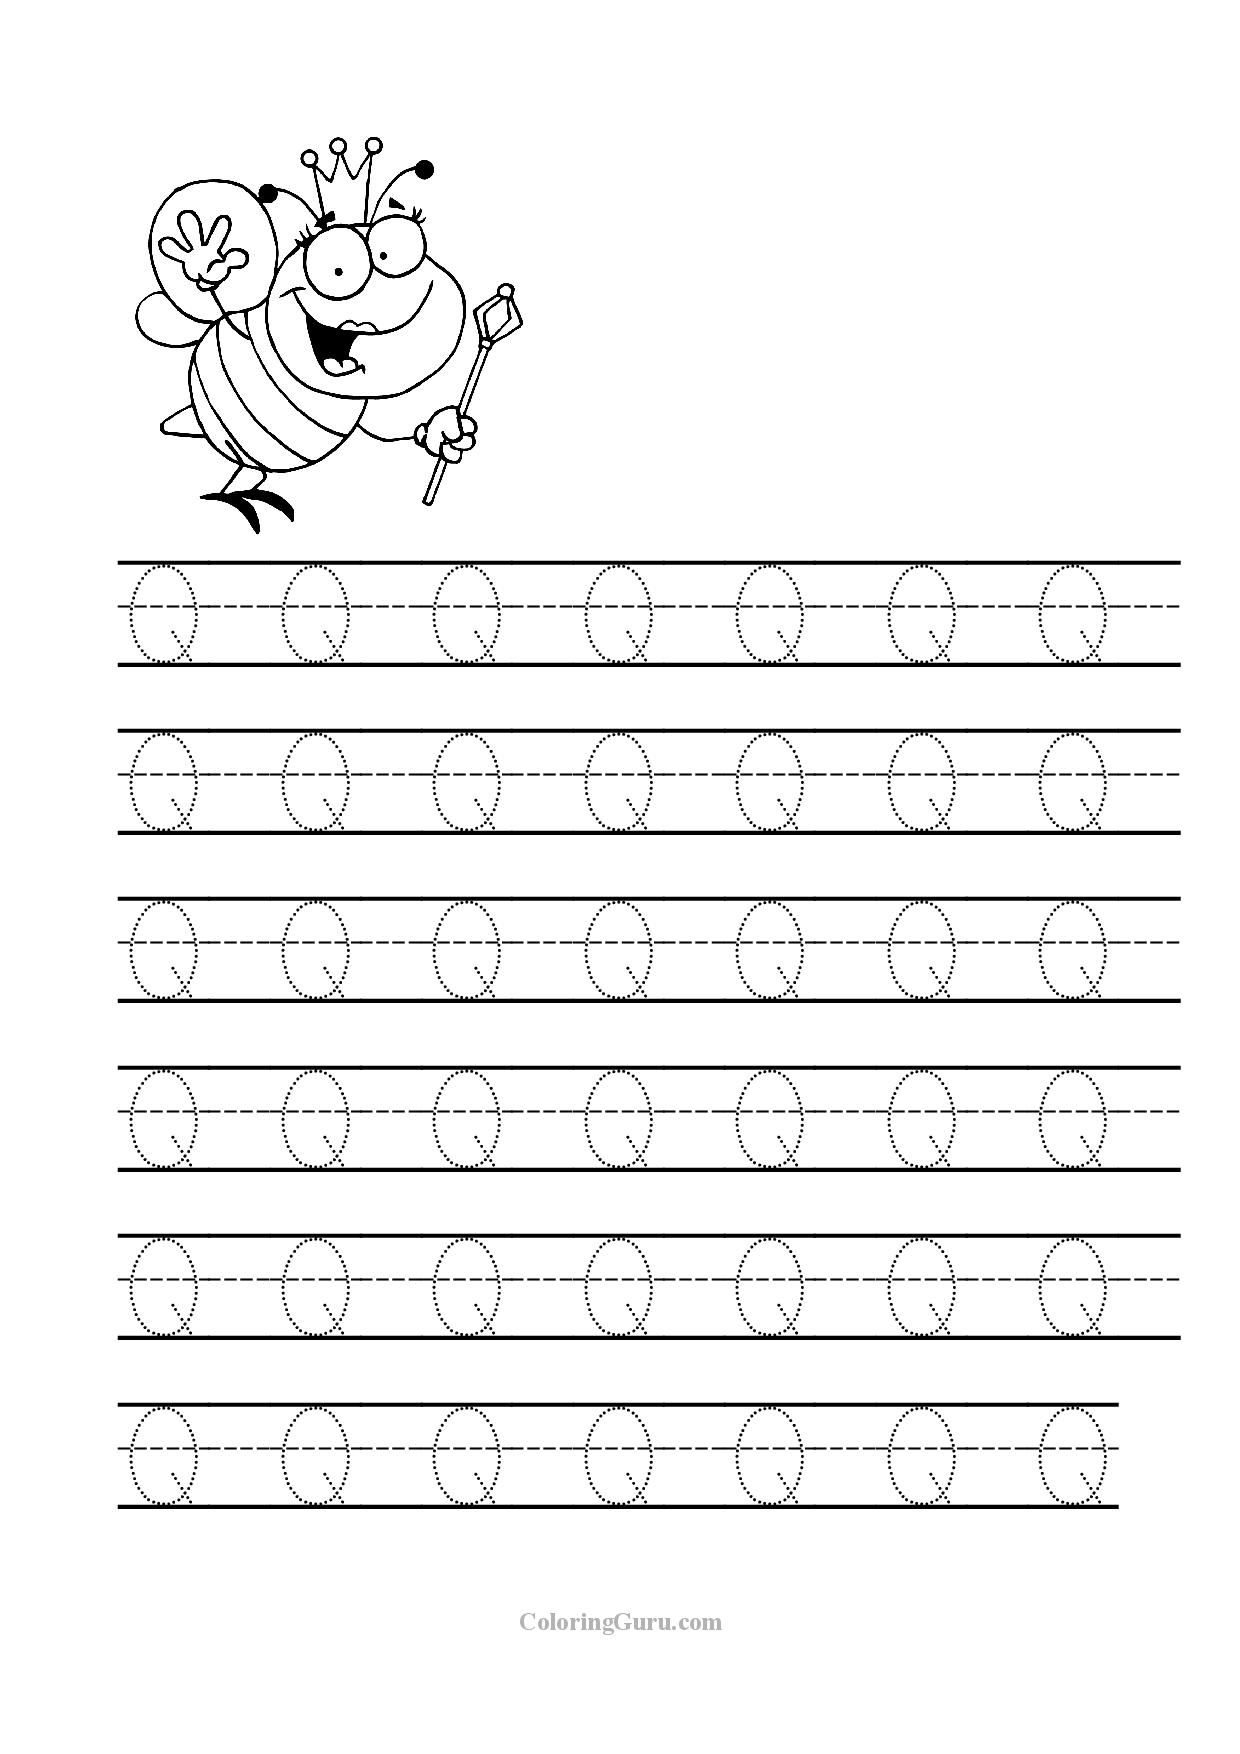 Free printable tracing letter q worksheets for preschool free printable tracing letter q worksheets for preschool robcynllc Image collections